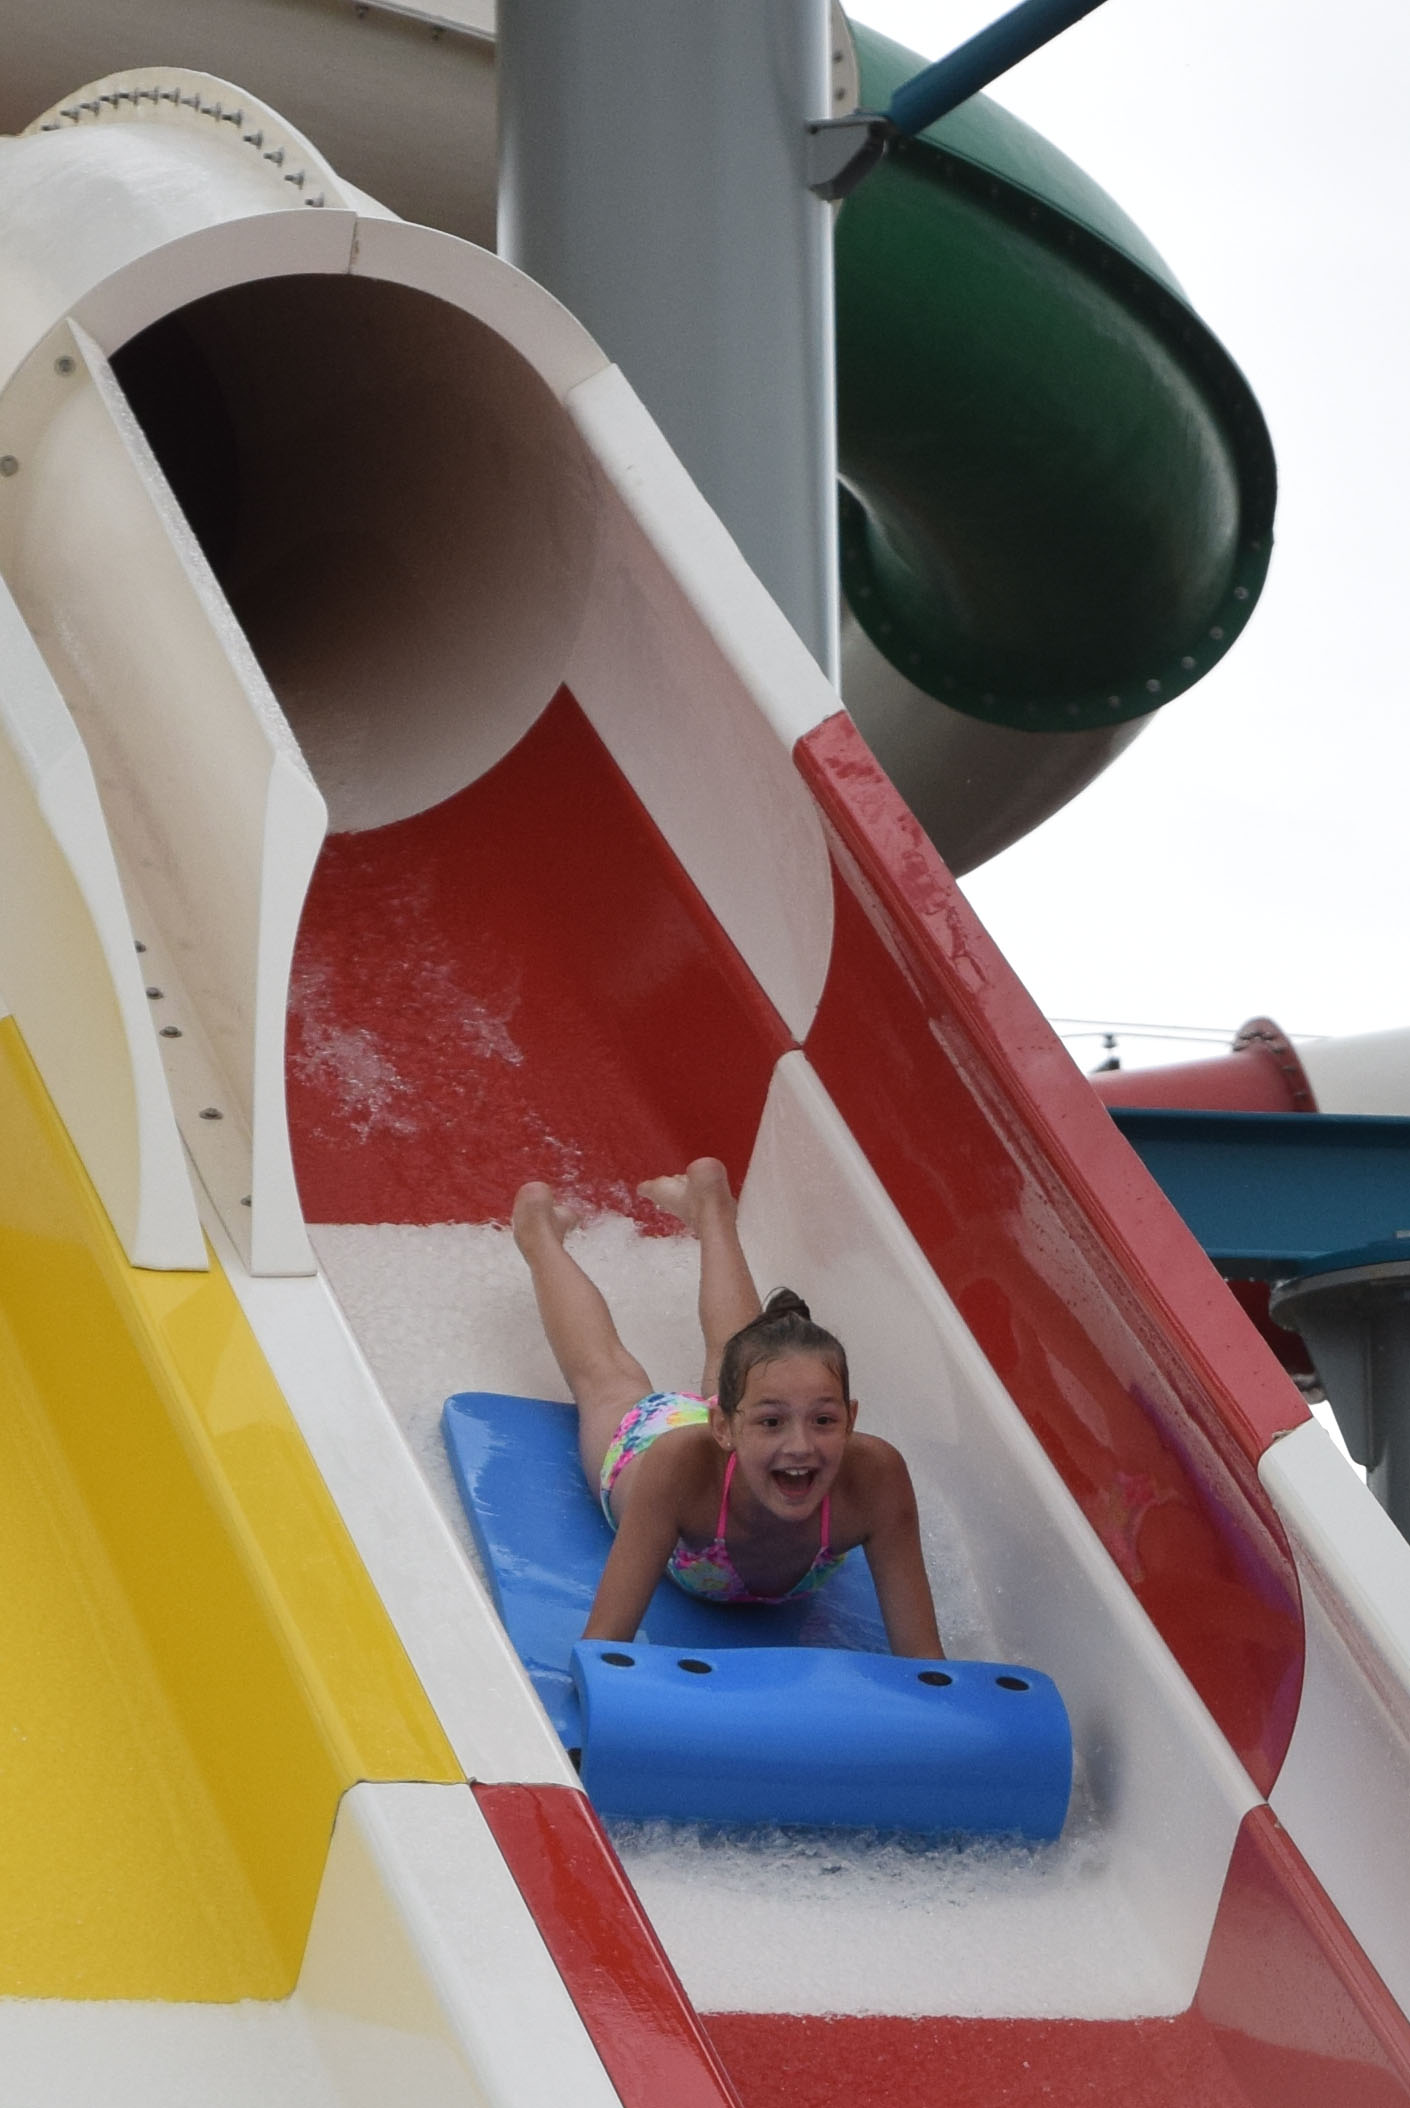 Smiling girl on red slide cropped